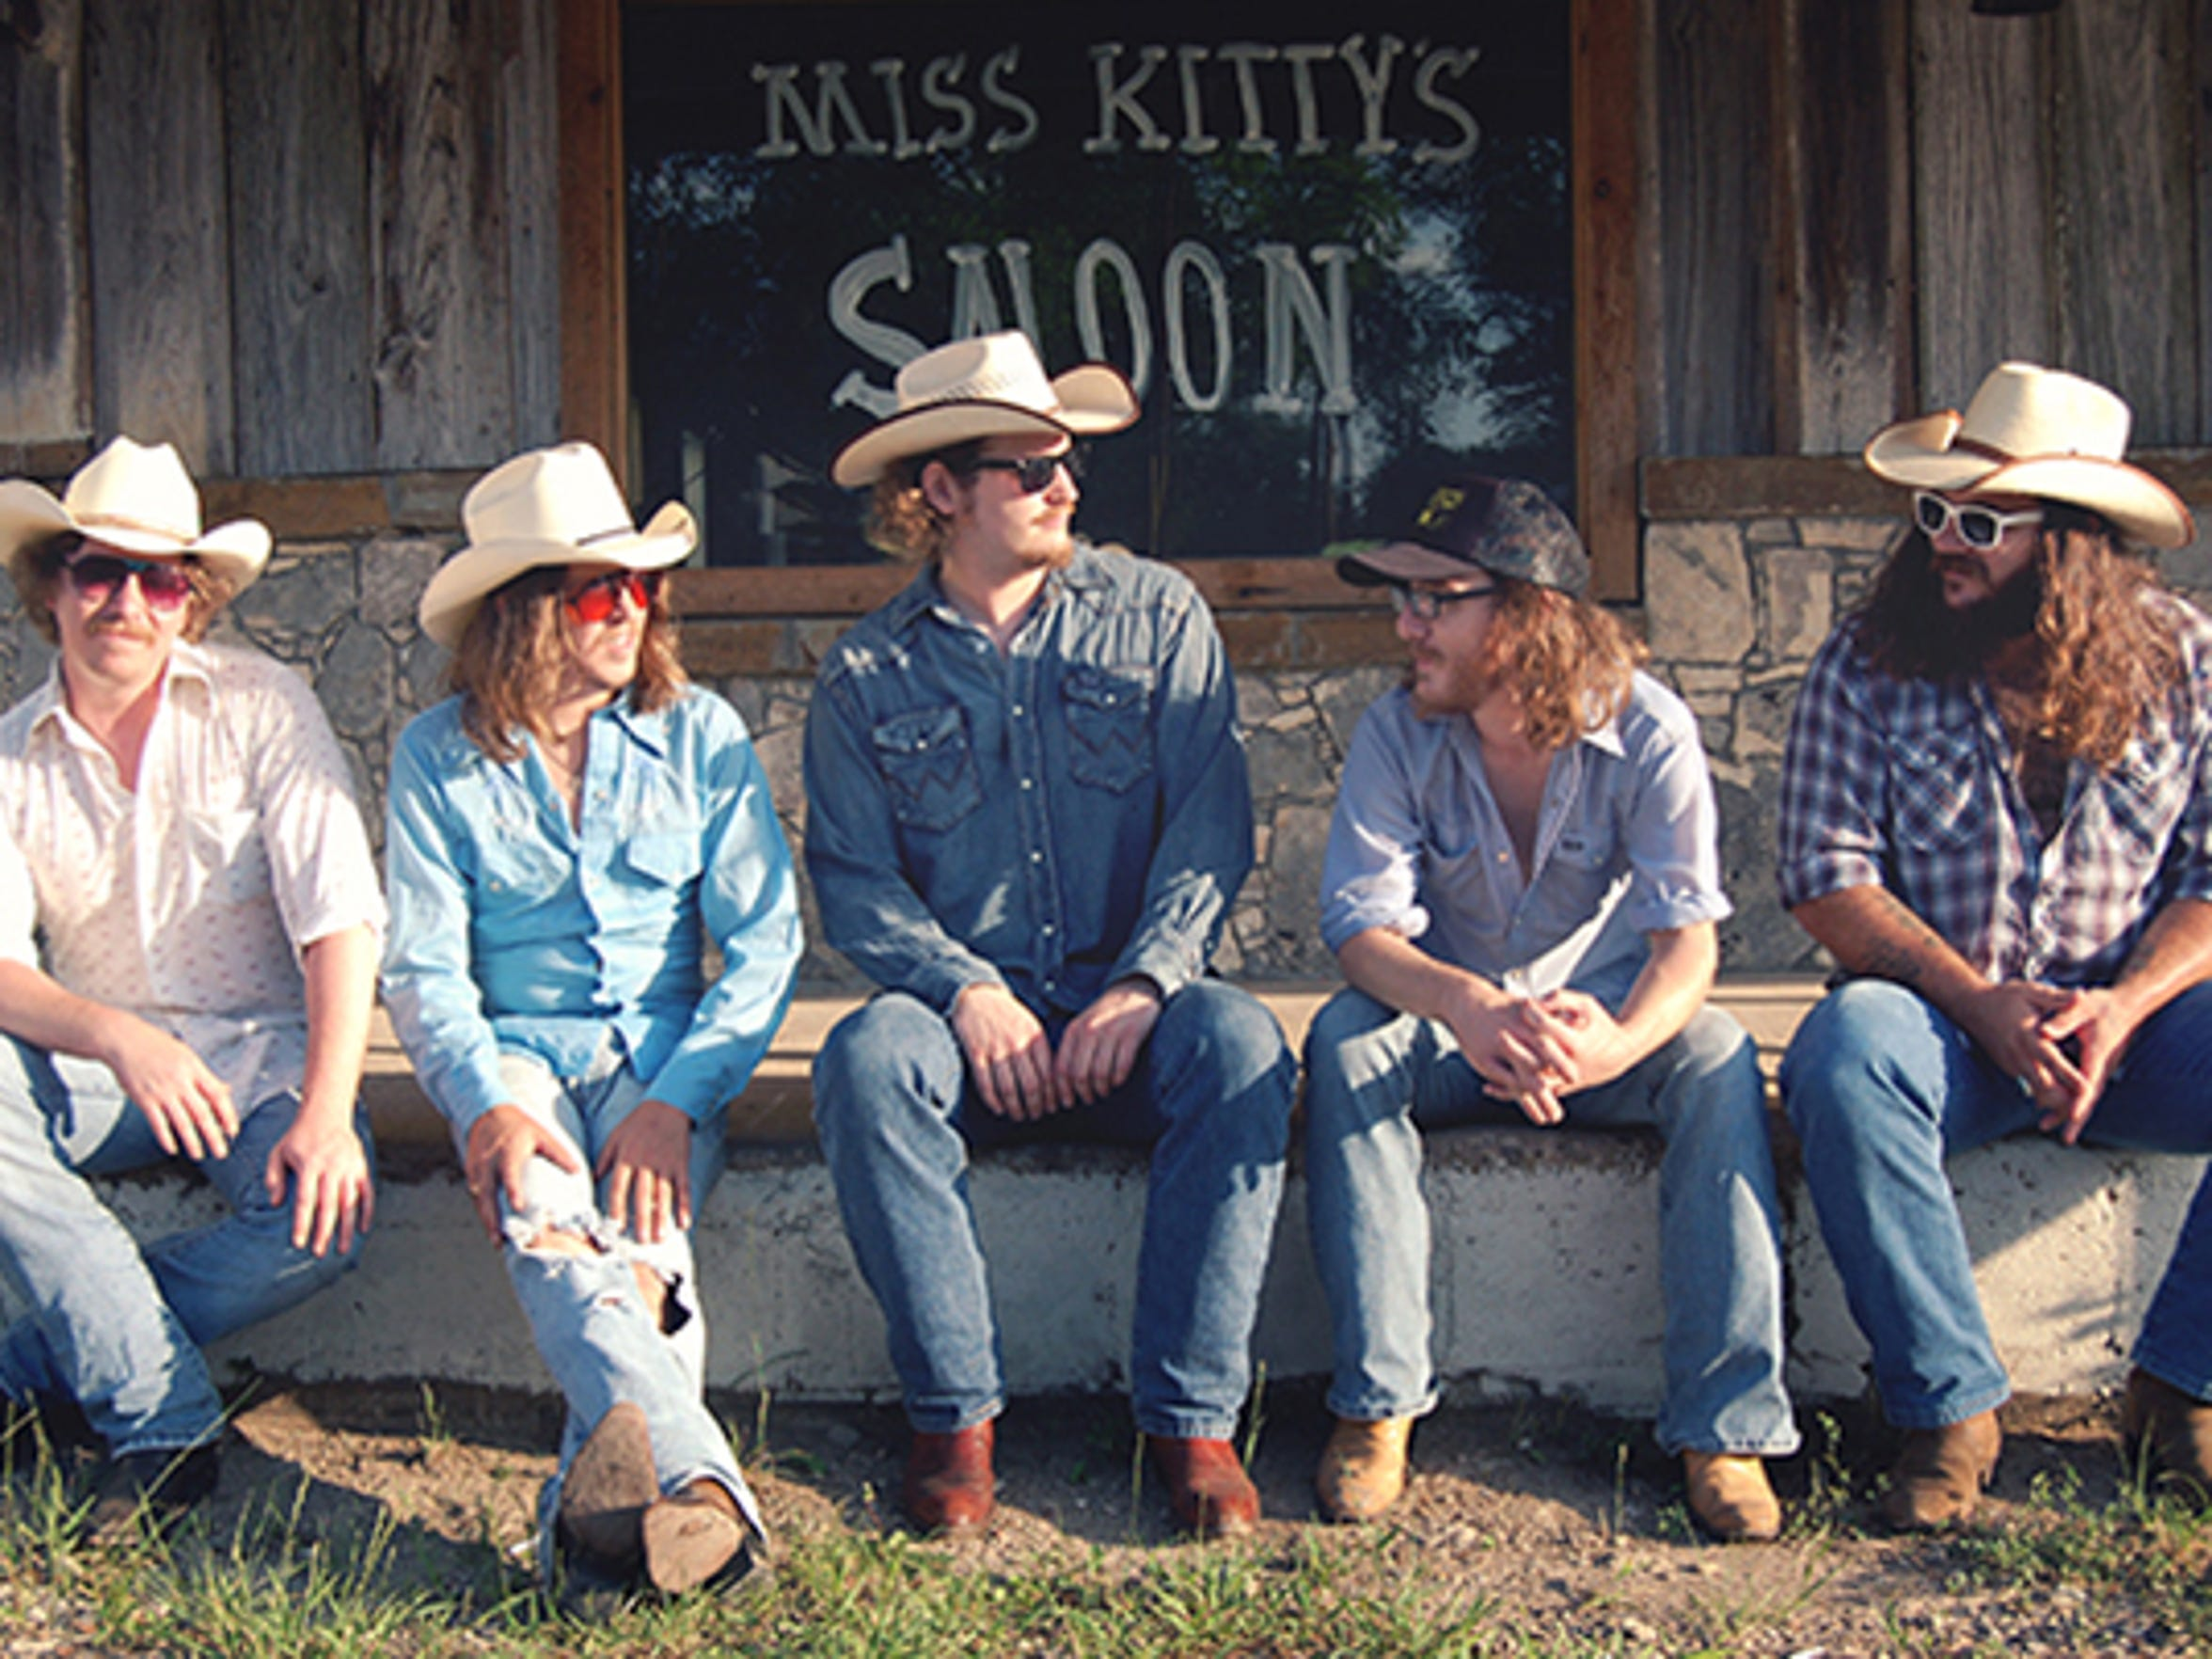 Attractions at the Southern New Mexico State Fair include Mike and the Moonpies appearing at 8:30 p.m. Saturday, Oct. 3.